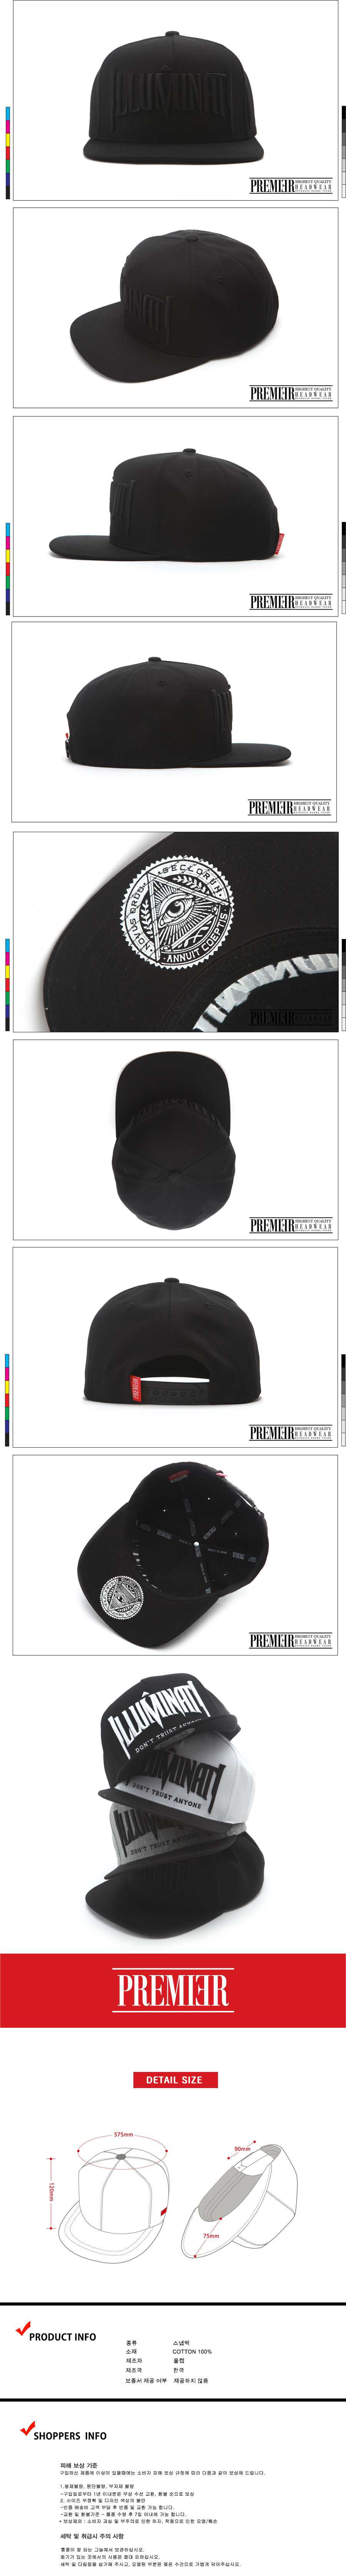 [ PREMIER ] [Premier] Snapback Illuminati All Black